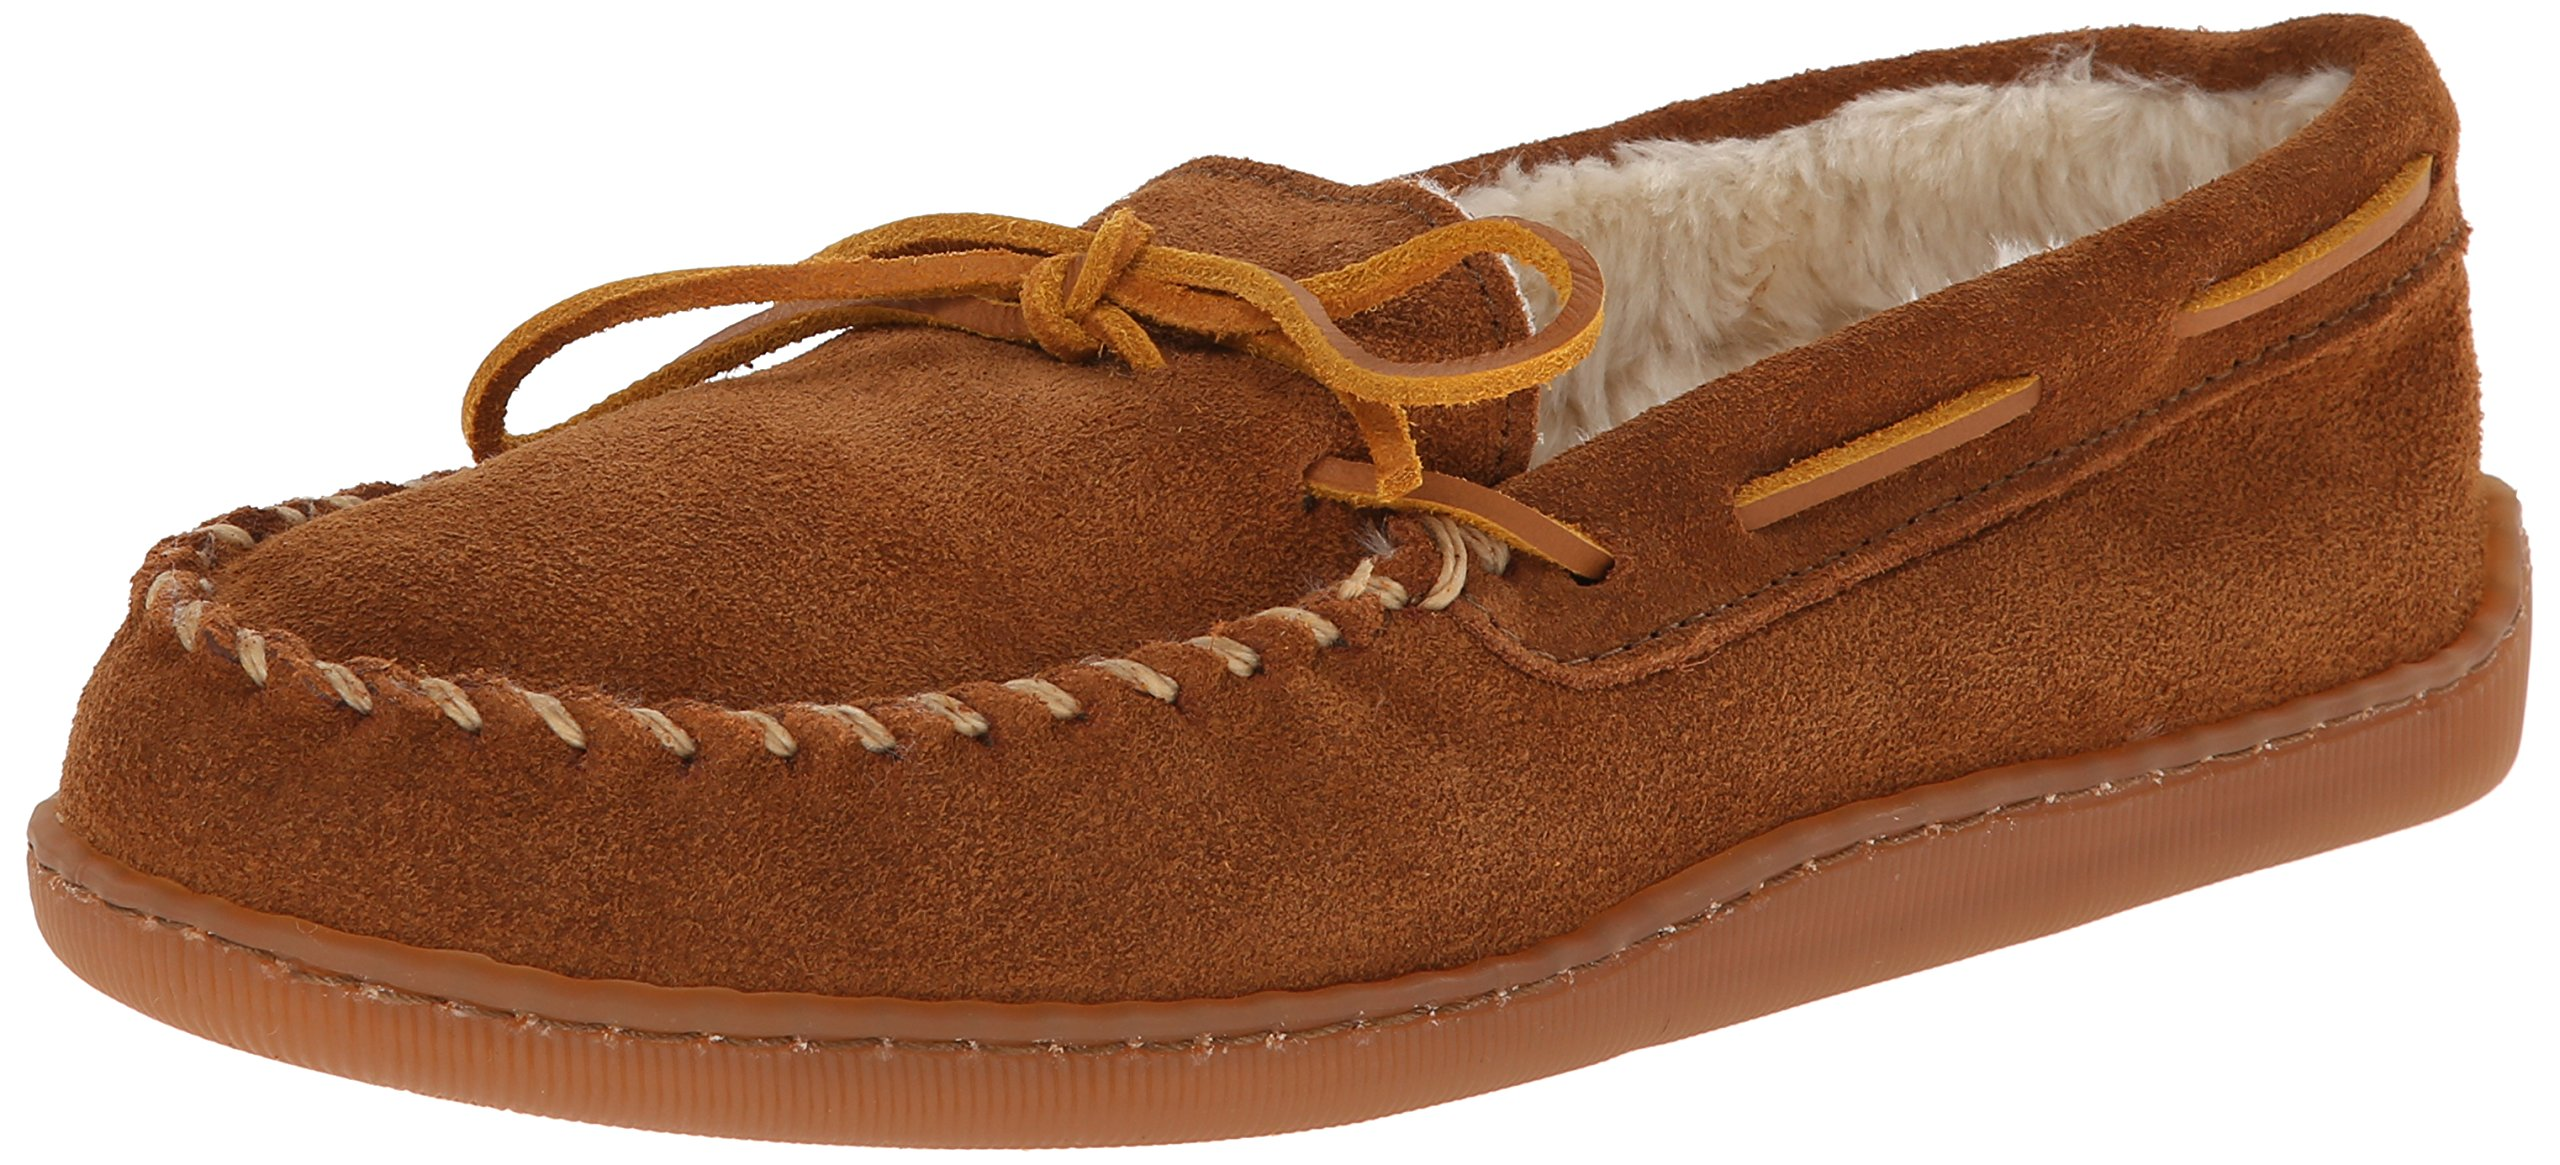 Minnetonka Men's 3902 Pile Hardsole Pile Lined Slipper,Brown,11 M US by Minnetonka